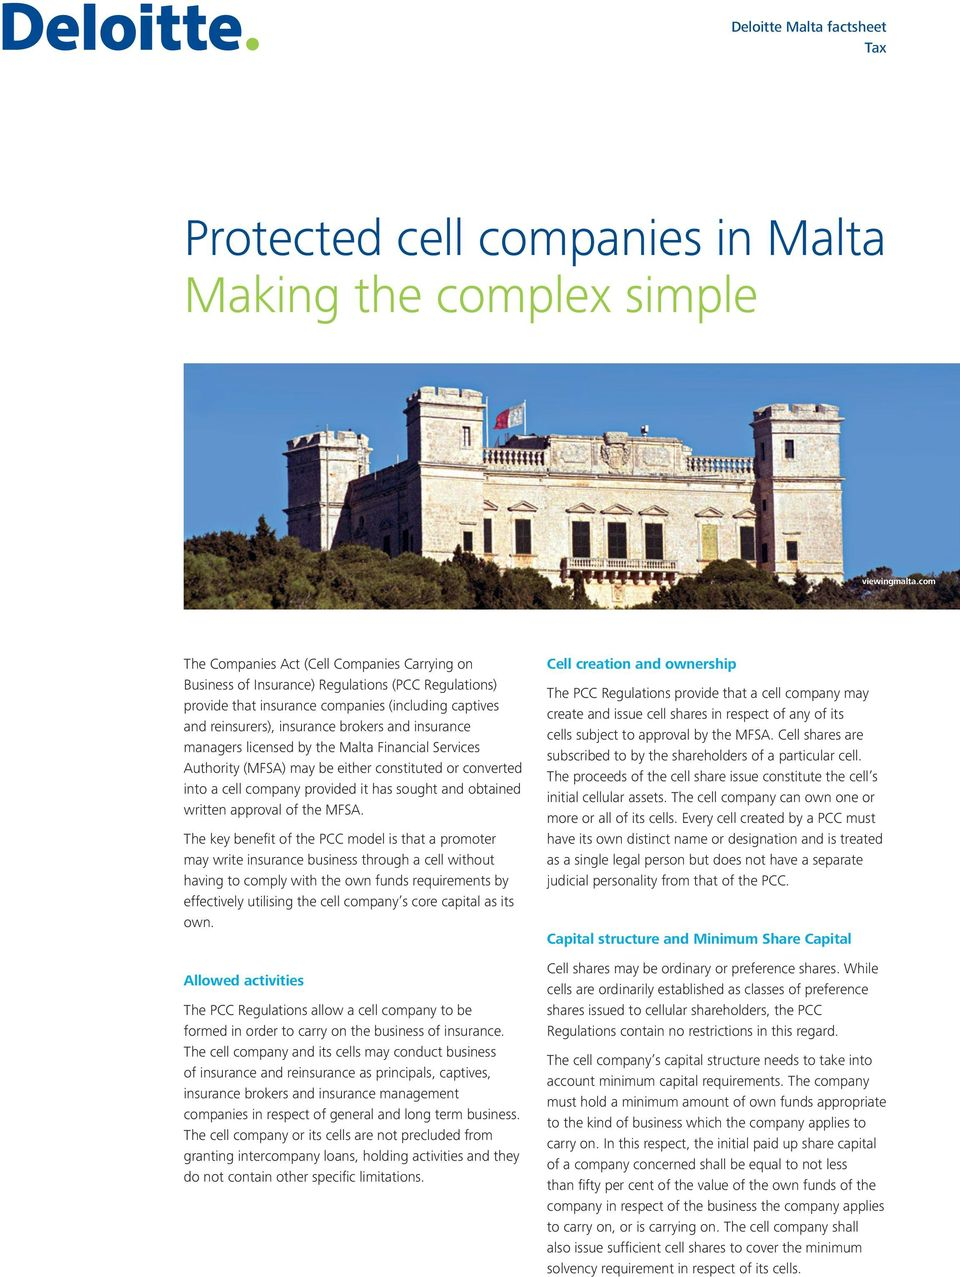 Malta Financial Services Authority (MFSA) may be either constituted or converted into a cell company provided it has sought and obtained written approval of the MFSA.